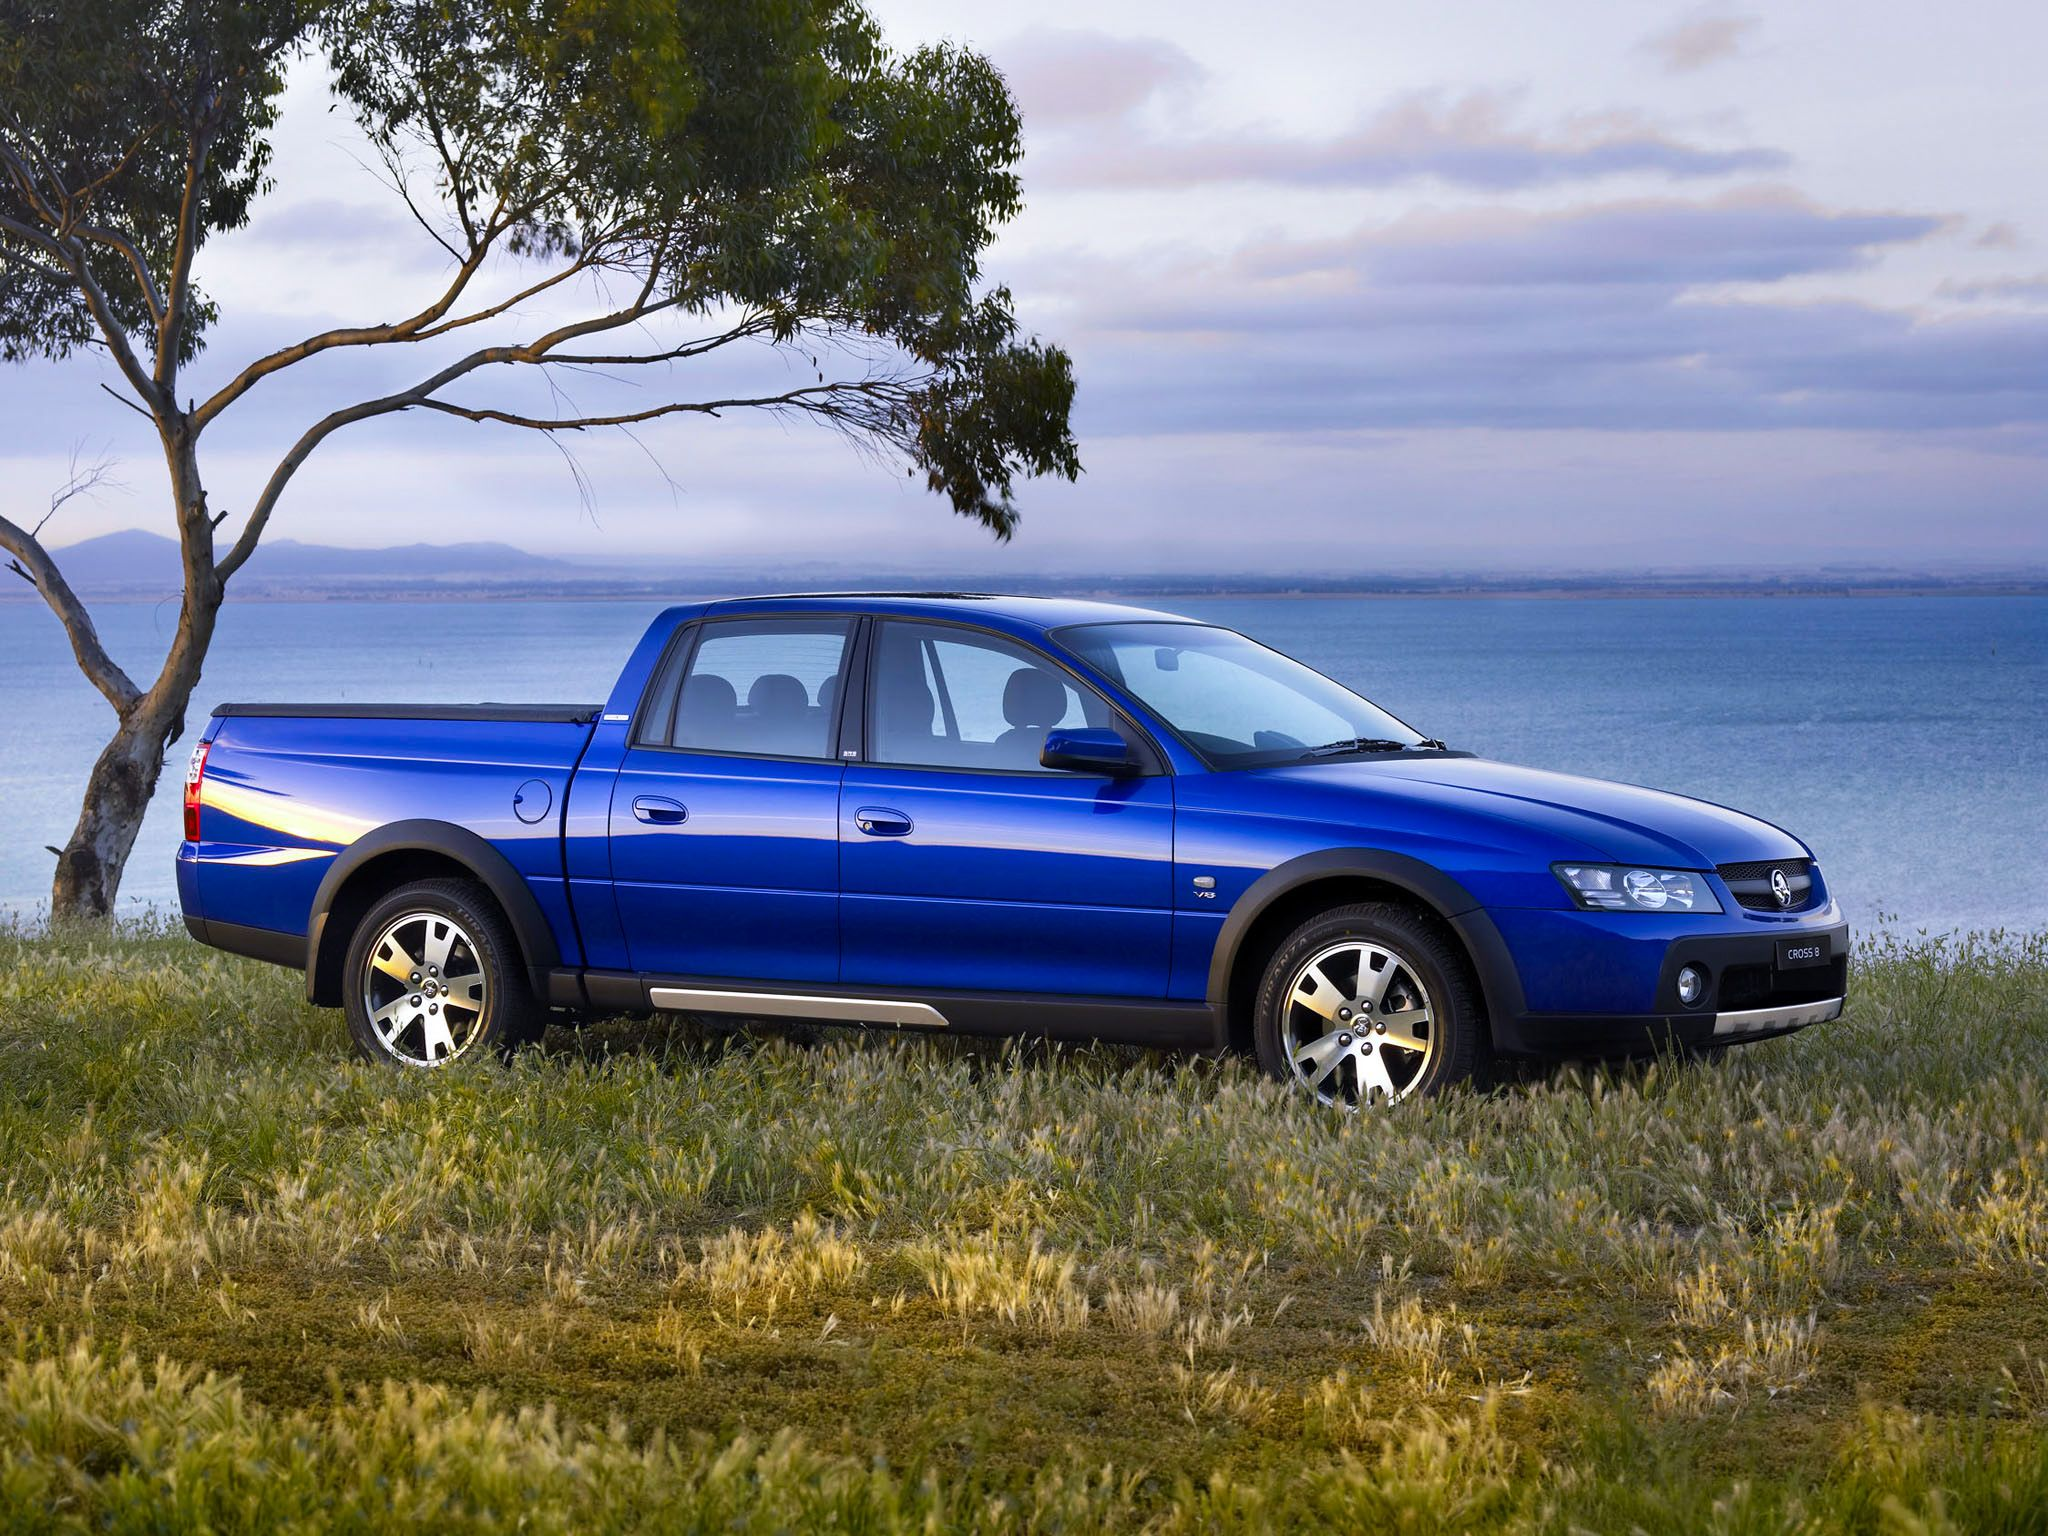 Holden VZ Crewman Cross 8 Ute. & Holden VZ Crewman Cross 8 Ute. | Holden Special Vehicles (HSV ...